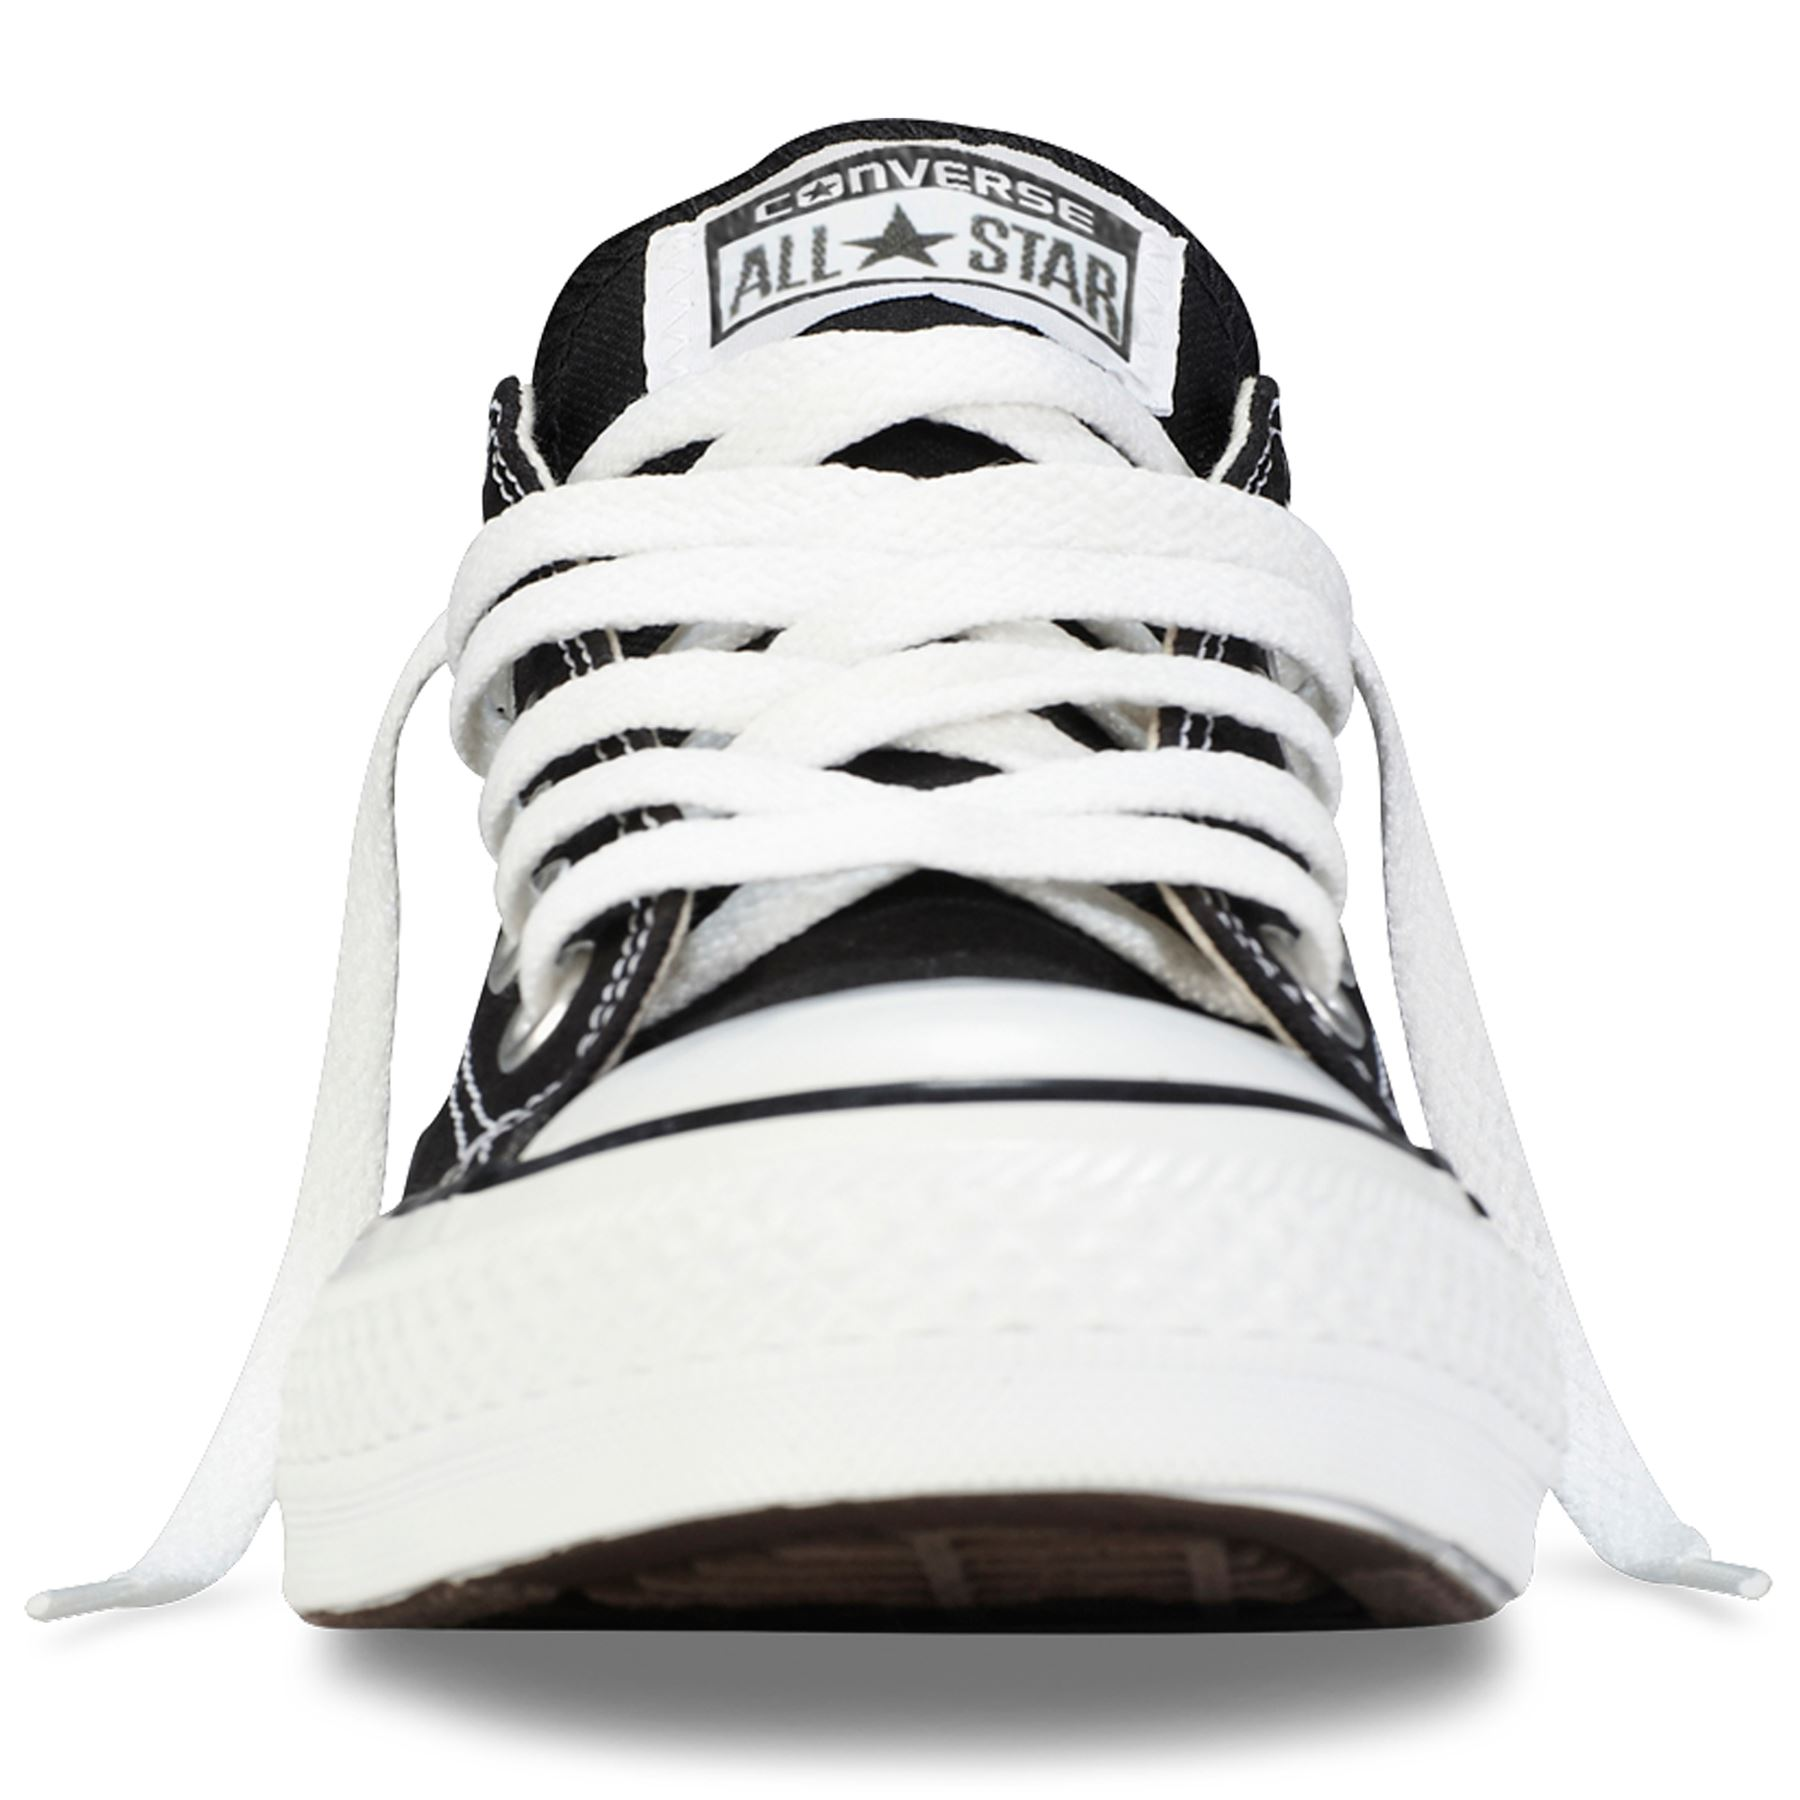 Converse-All-Star-Unisex-Chuck-Taylor-New-Mens-Womens-Low-Tops-Trainers-Pumps thumbnail 4